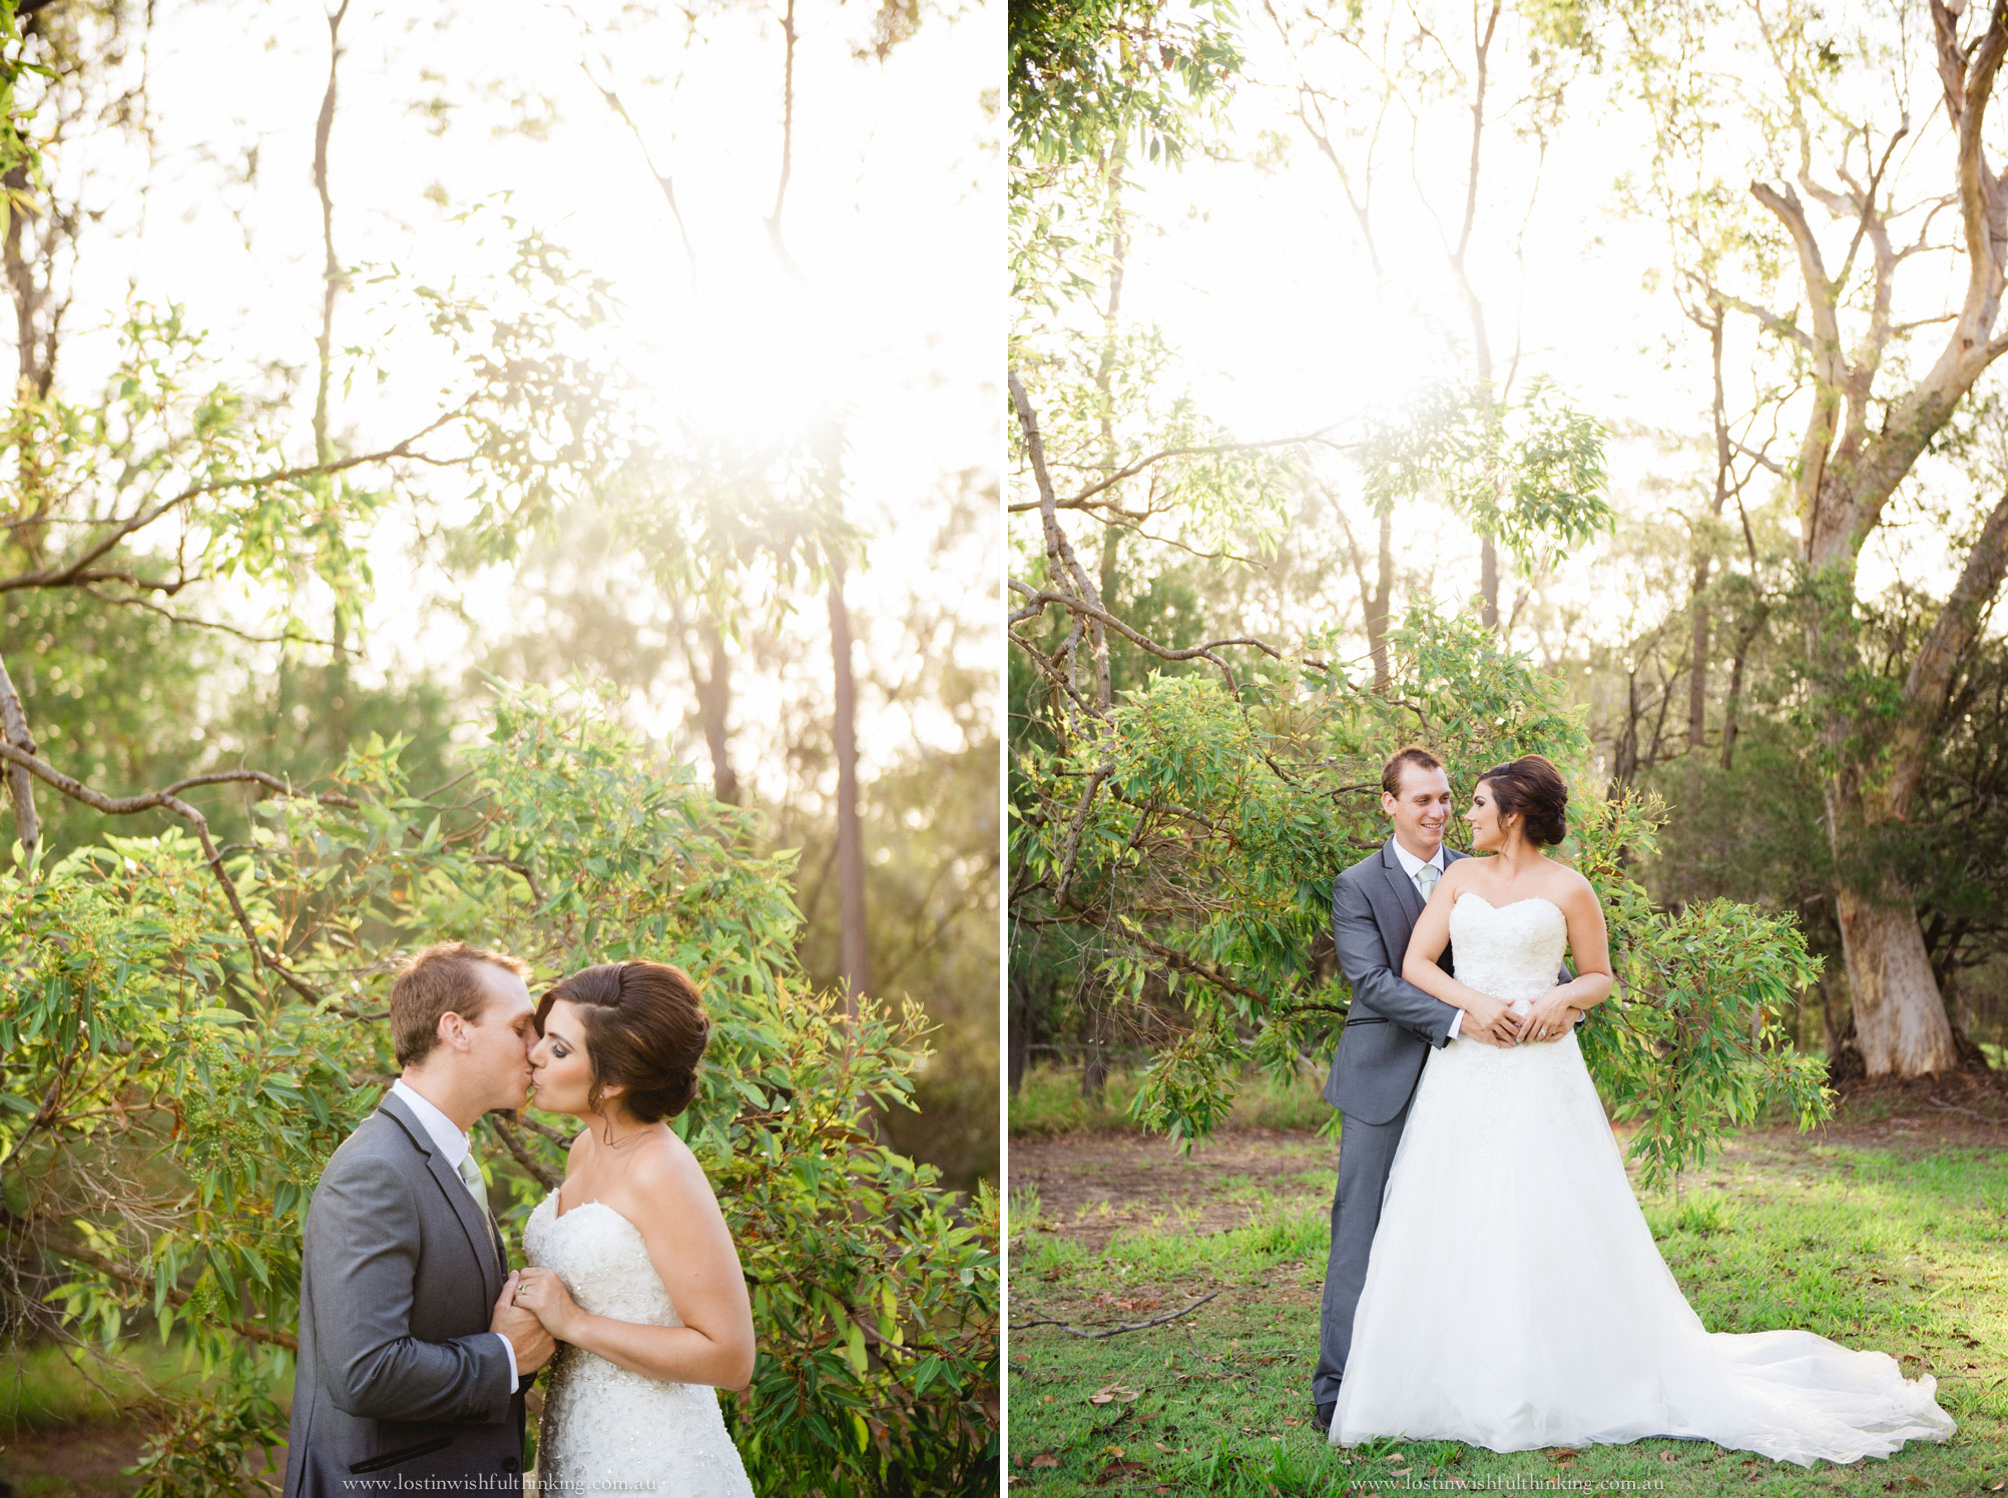 WEB-hannahmccawley-rachelle&murray-reshoot-sunsetwedding-diptych